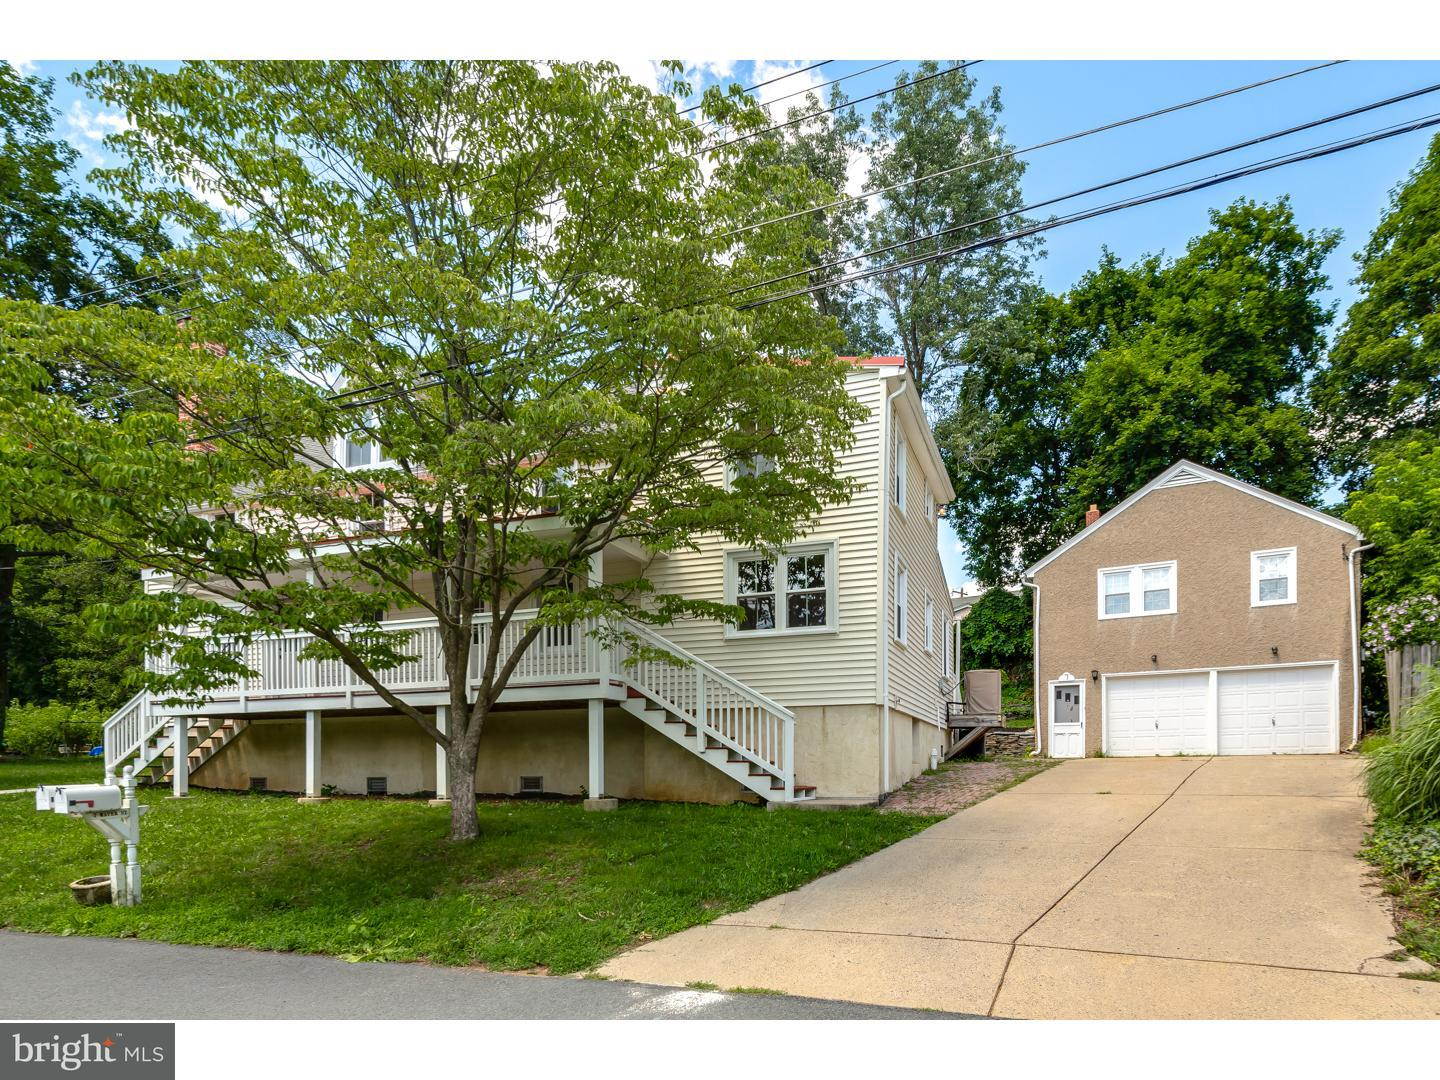 6 WATER ST, HULMEVILLE - Listed at $255,000, HULMEVILLE